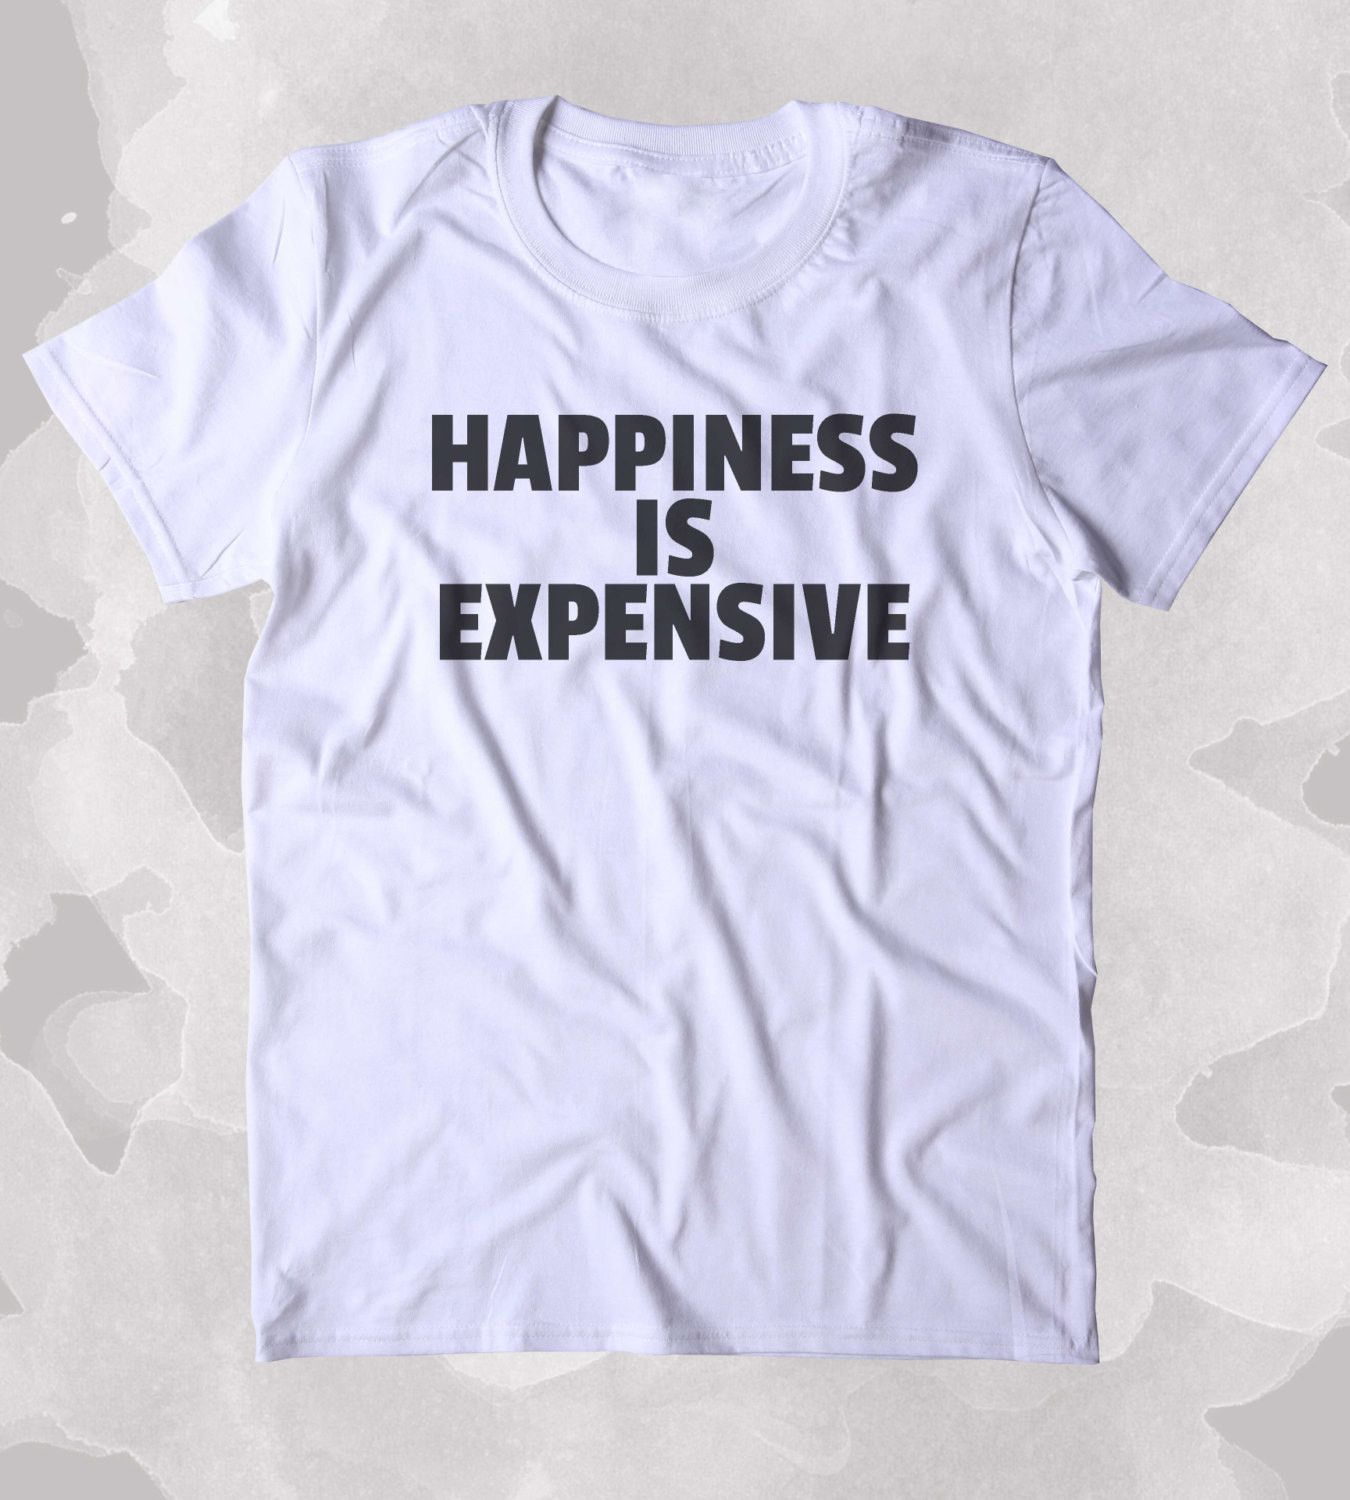 a7e87364 Happiness Is Expensive Shirt Funny Shopping Addiction Shopaholic Girly Clothing  Tumblr T-shirt